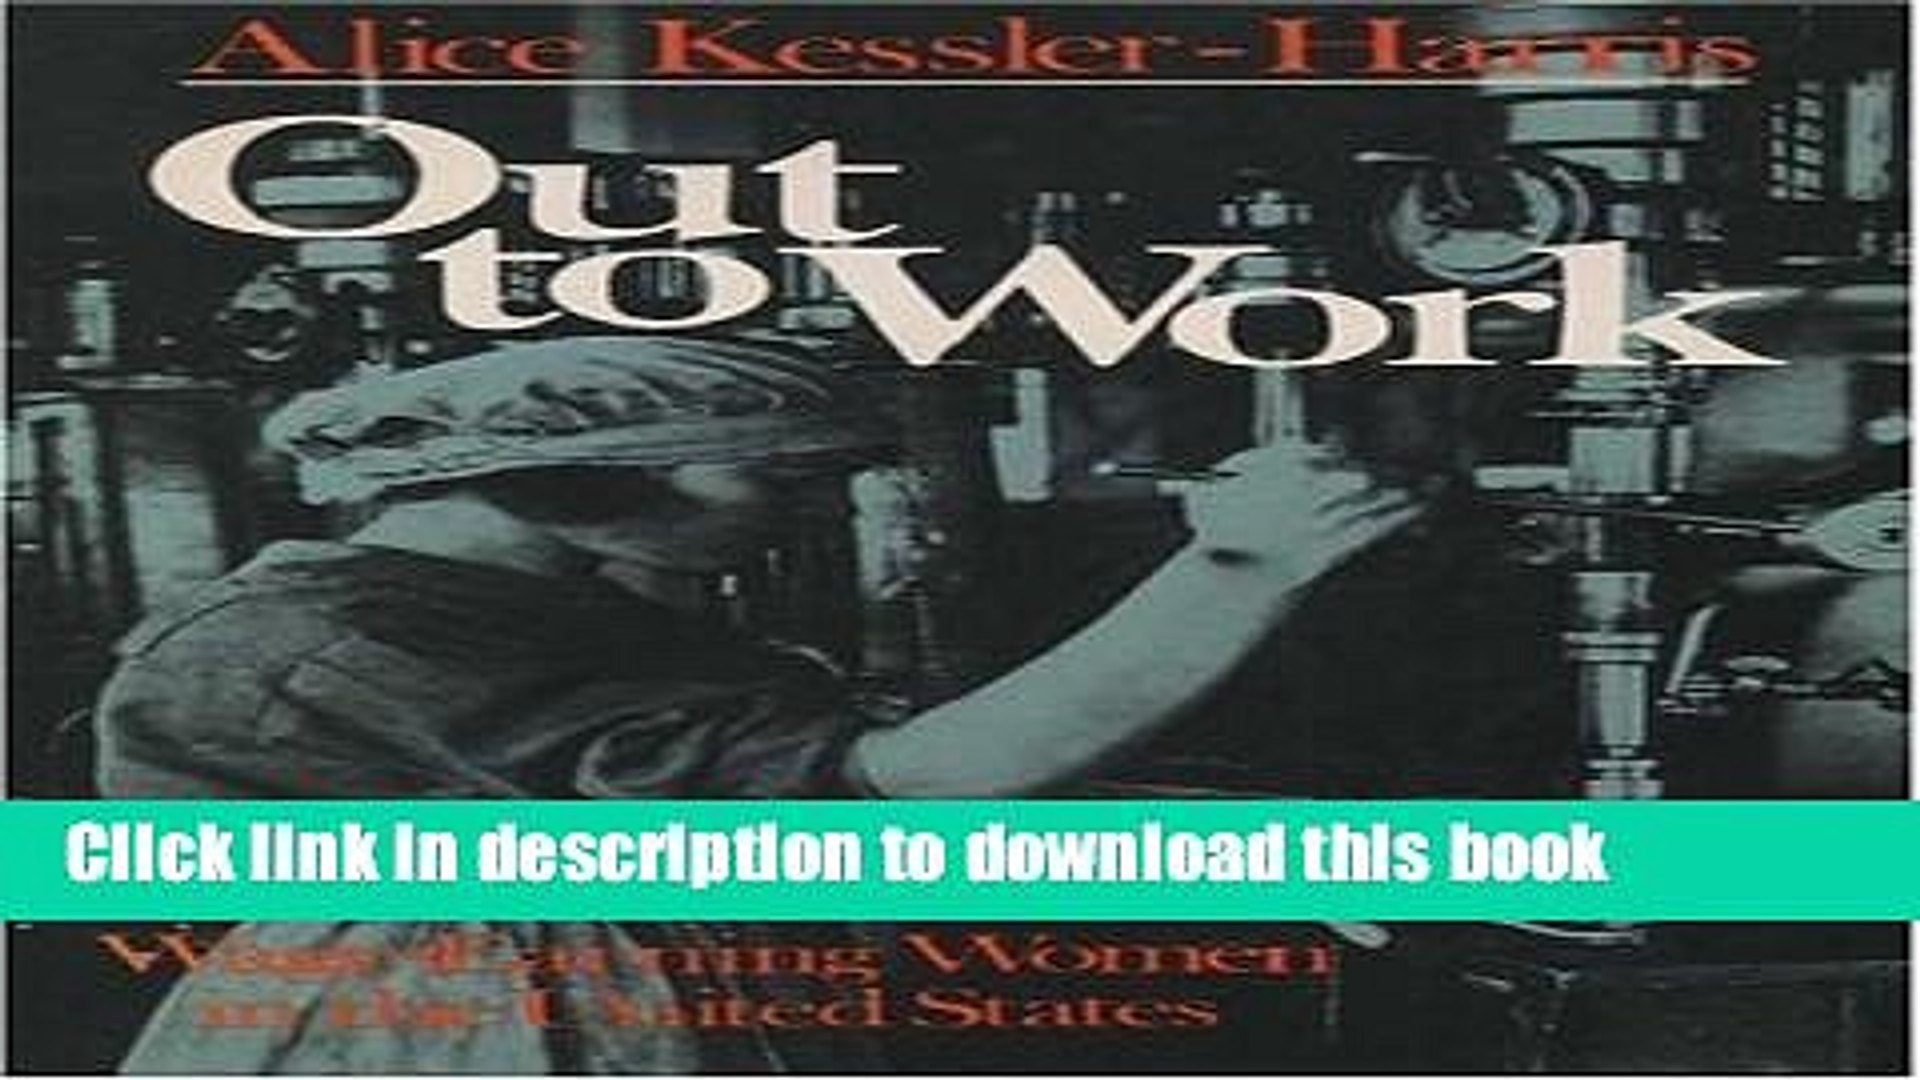 [Popular] Out to Work: The History of Wage-Earning Women in the United States Paperback Free